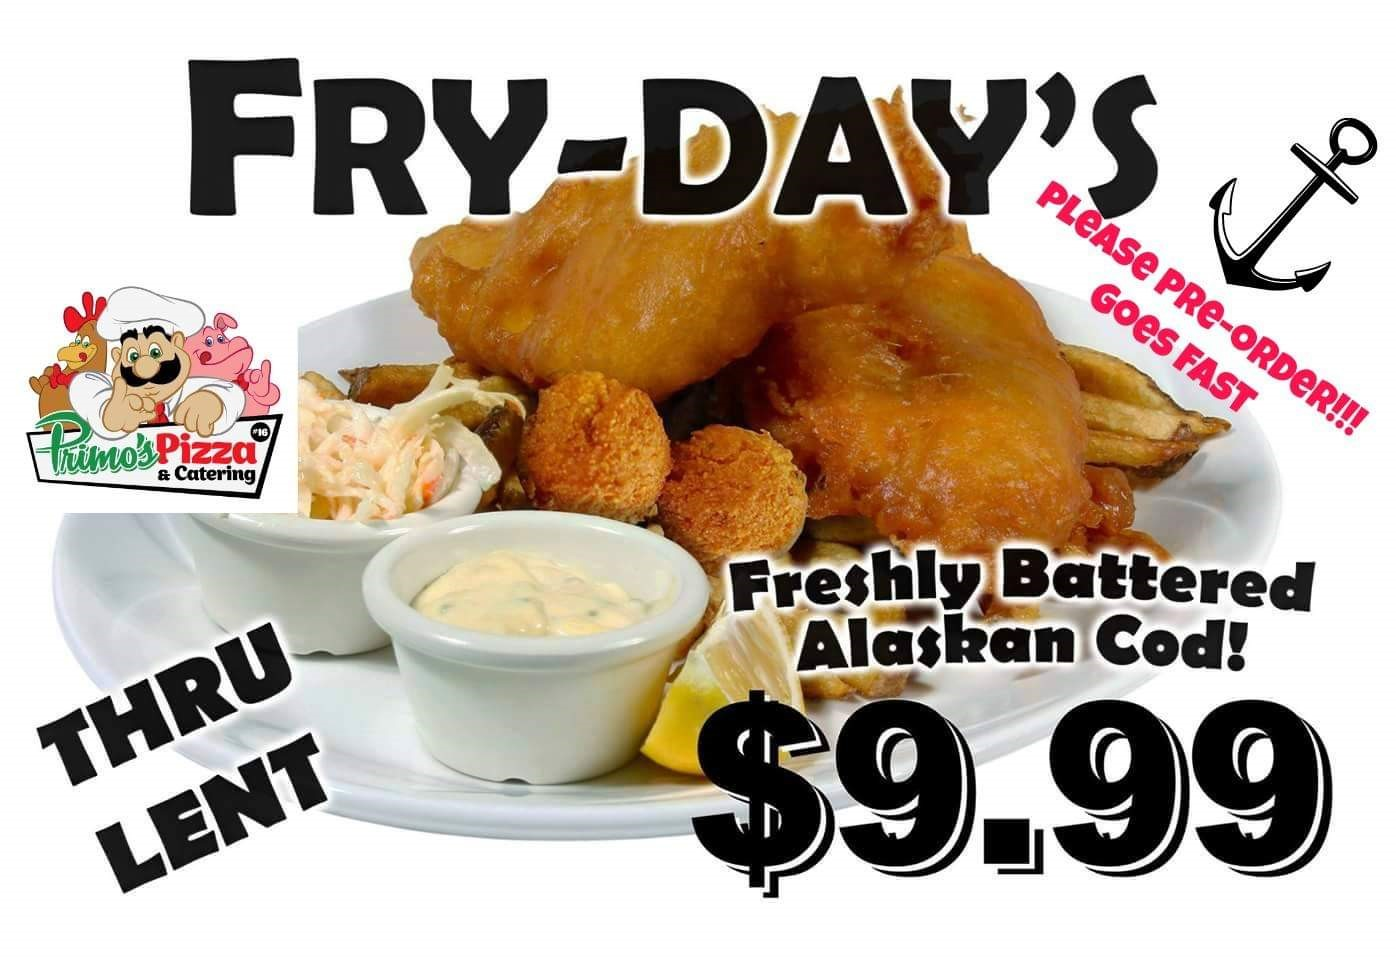 Fry-Days Thru Lent - Please pre-order! Goes fast! Freshly battered Alaskan cod $9.99